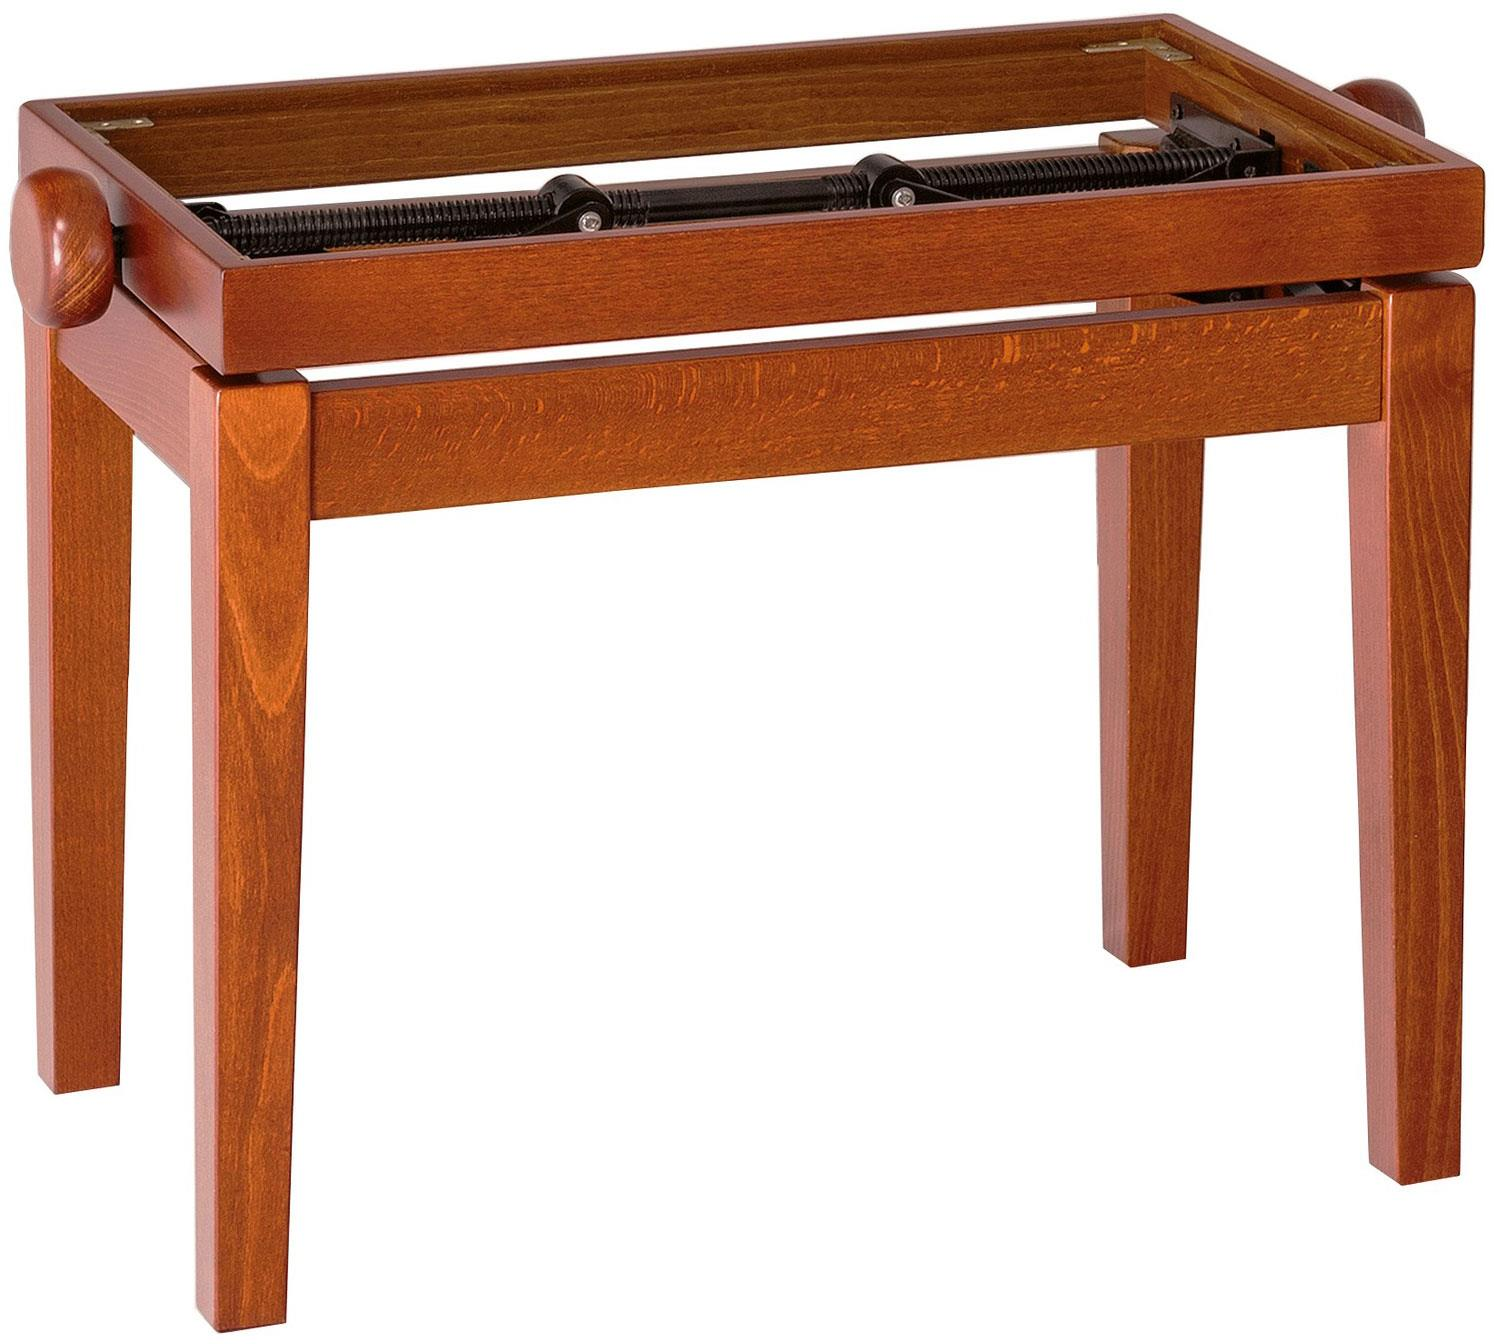 Konig Amp Meyer 13740 Piano Bench Wooden Frame Cherry Matt